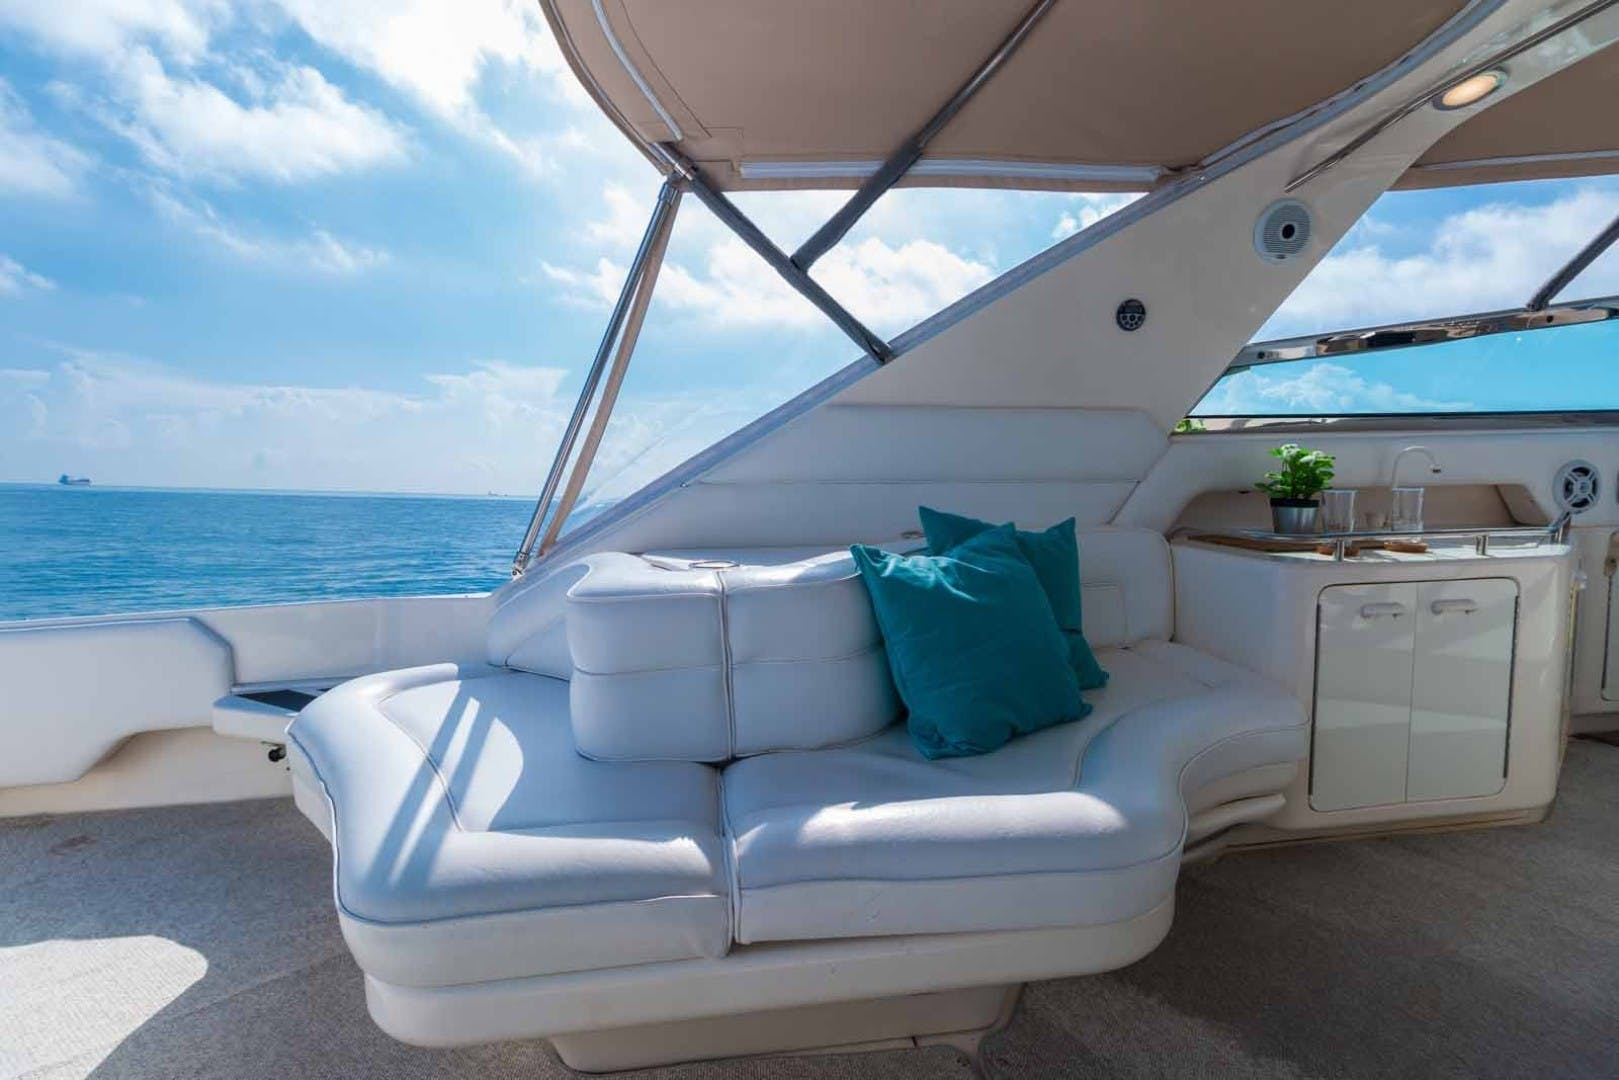 1999 Sea Ray 63' Super Sun Sport DAPHNE EXPRESS | Picture 8 of 44